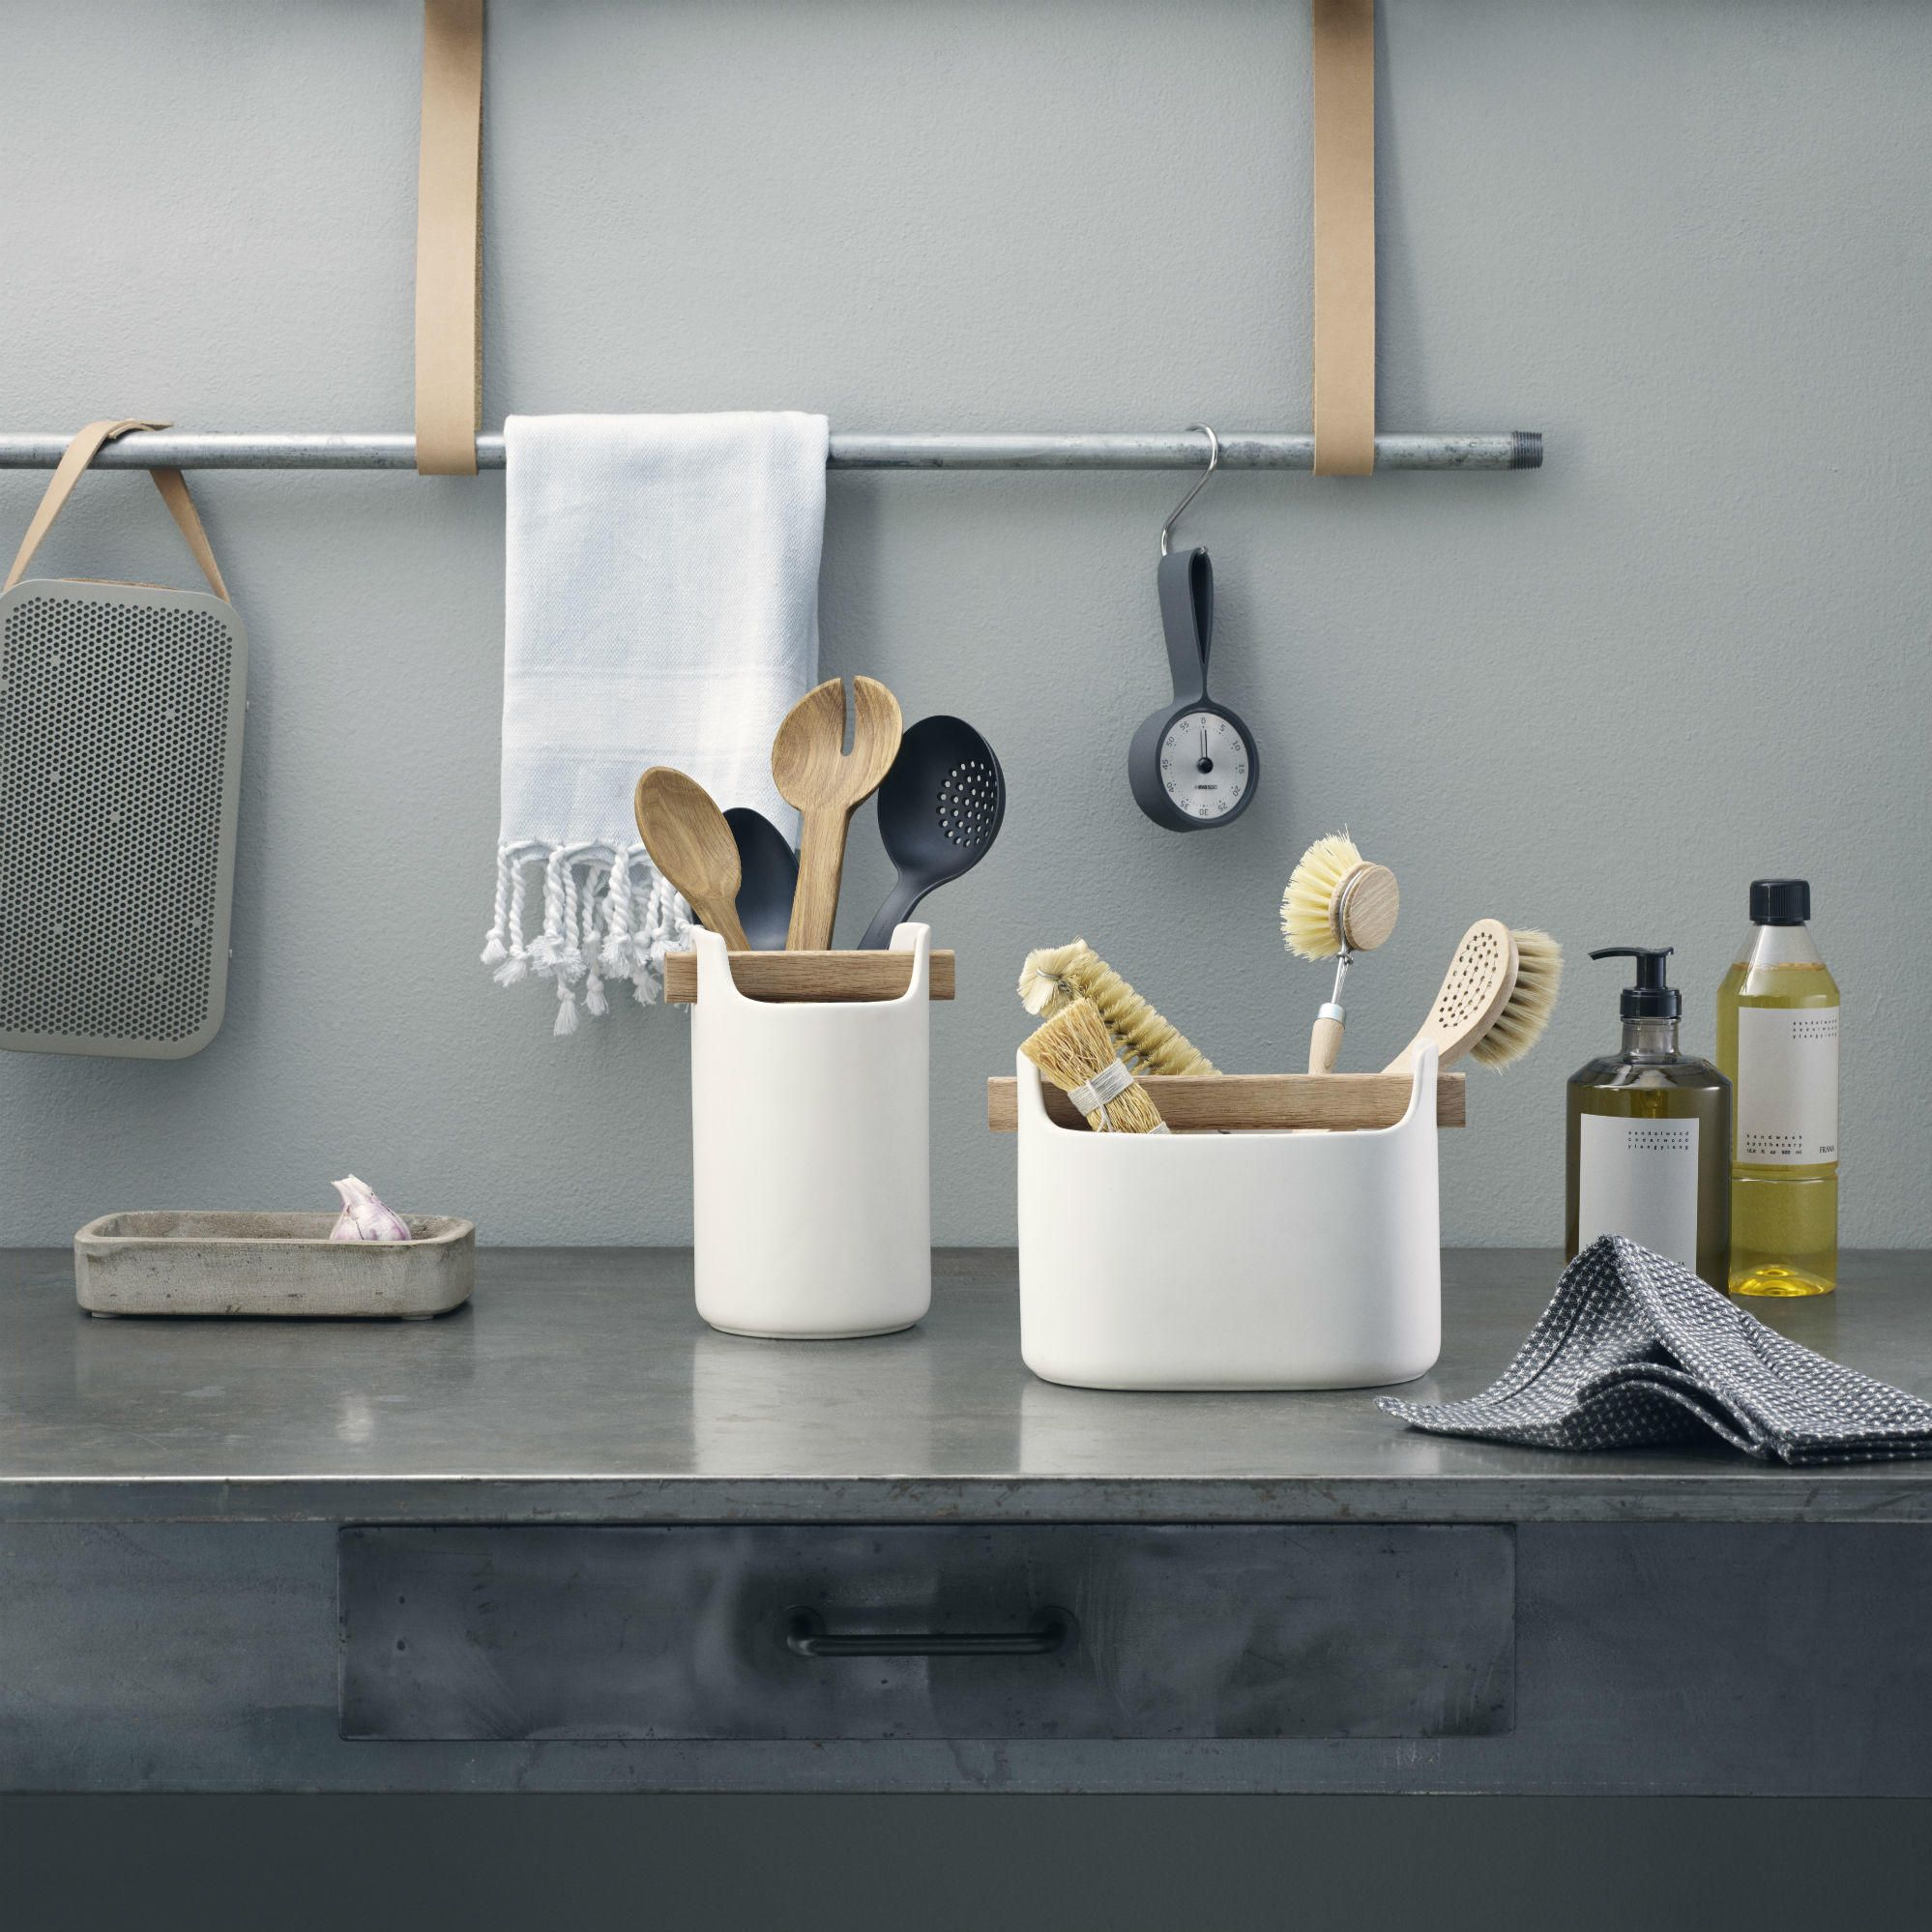 With the toolbox organizer itus easy to keep your kitchen worktop